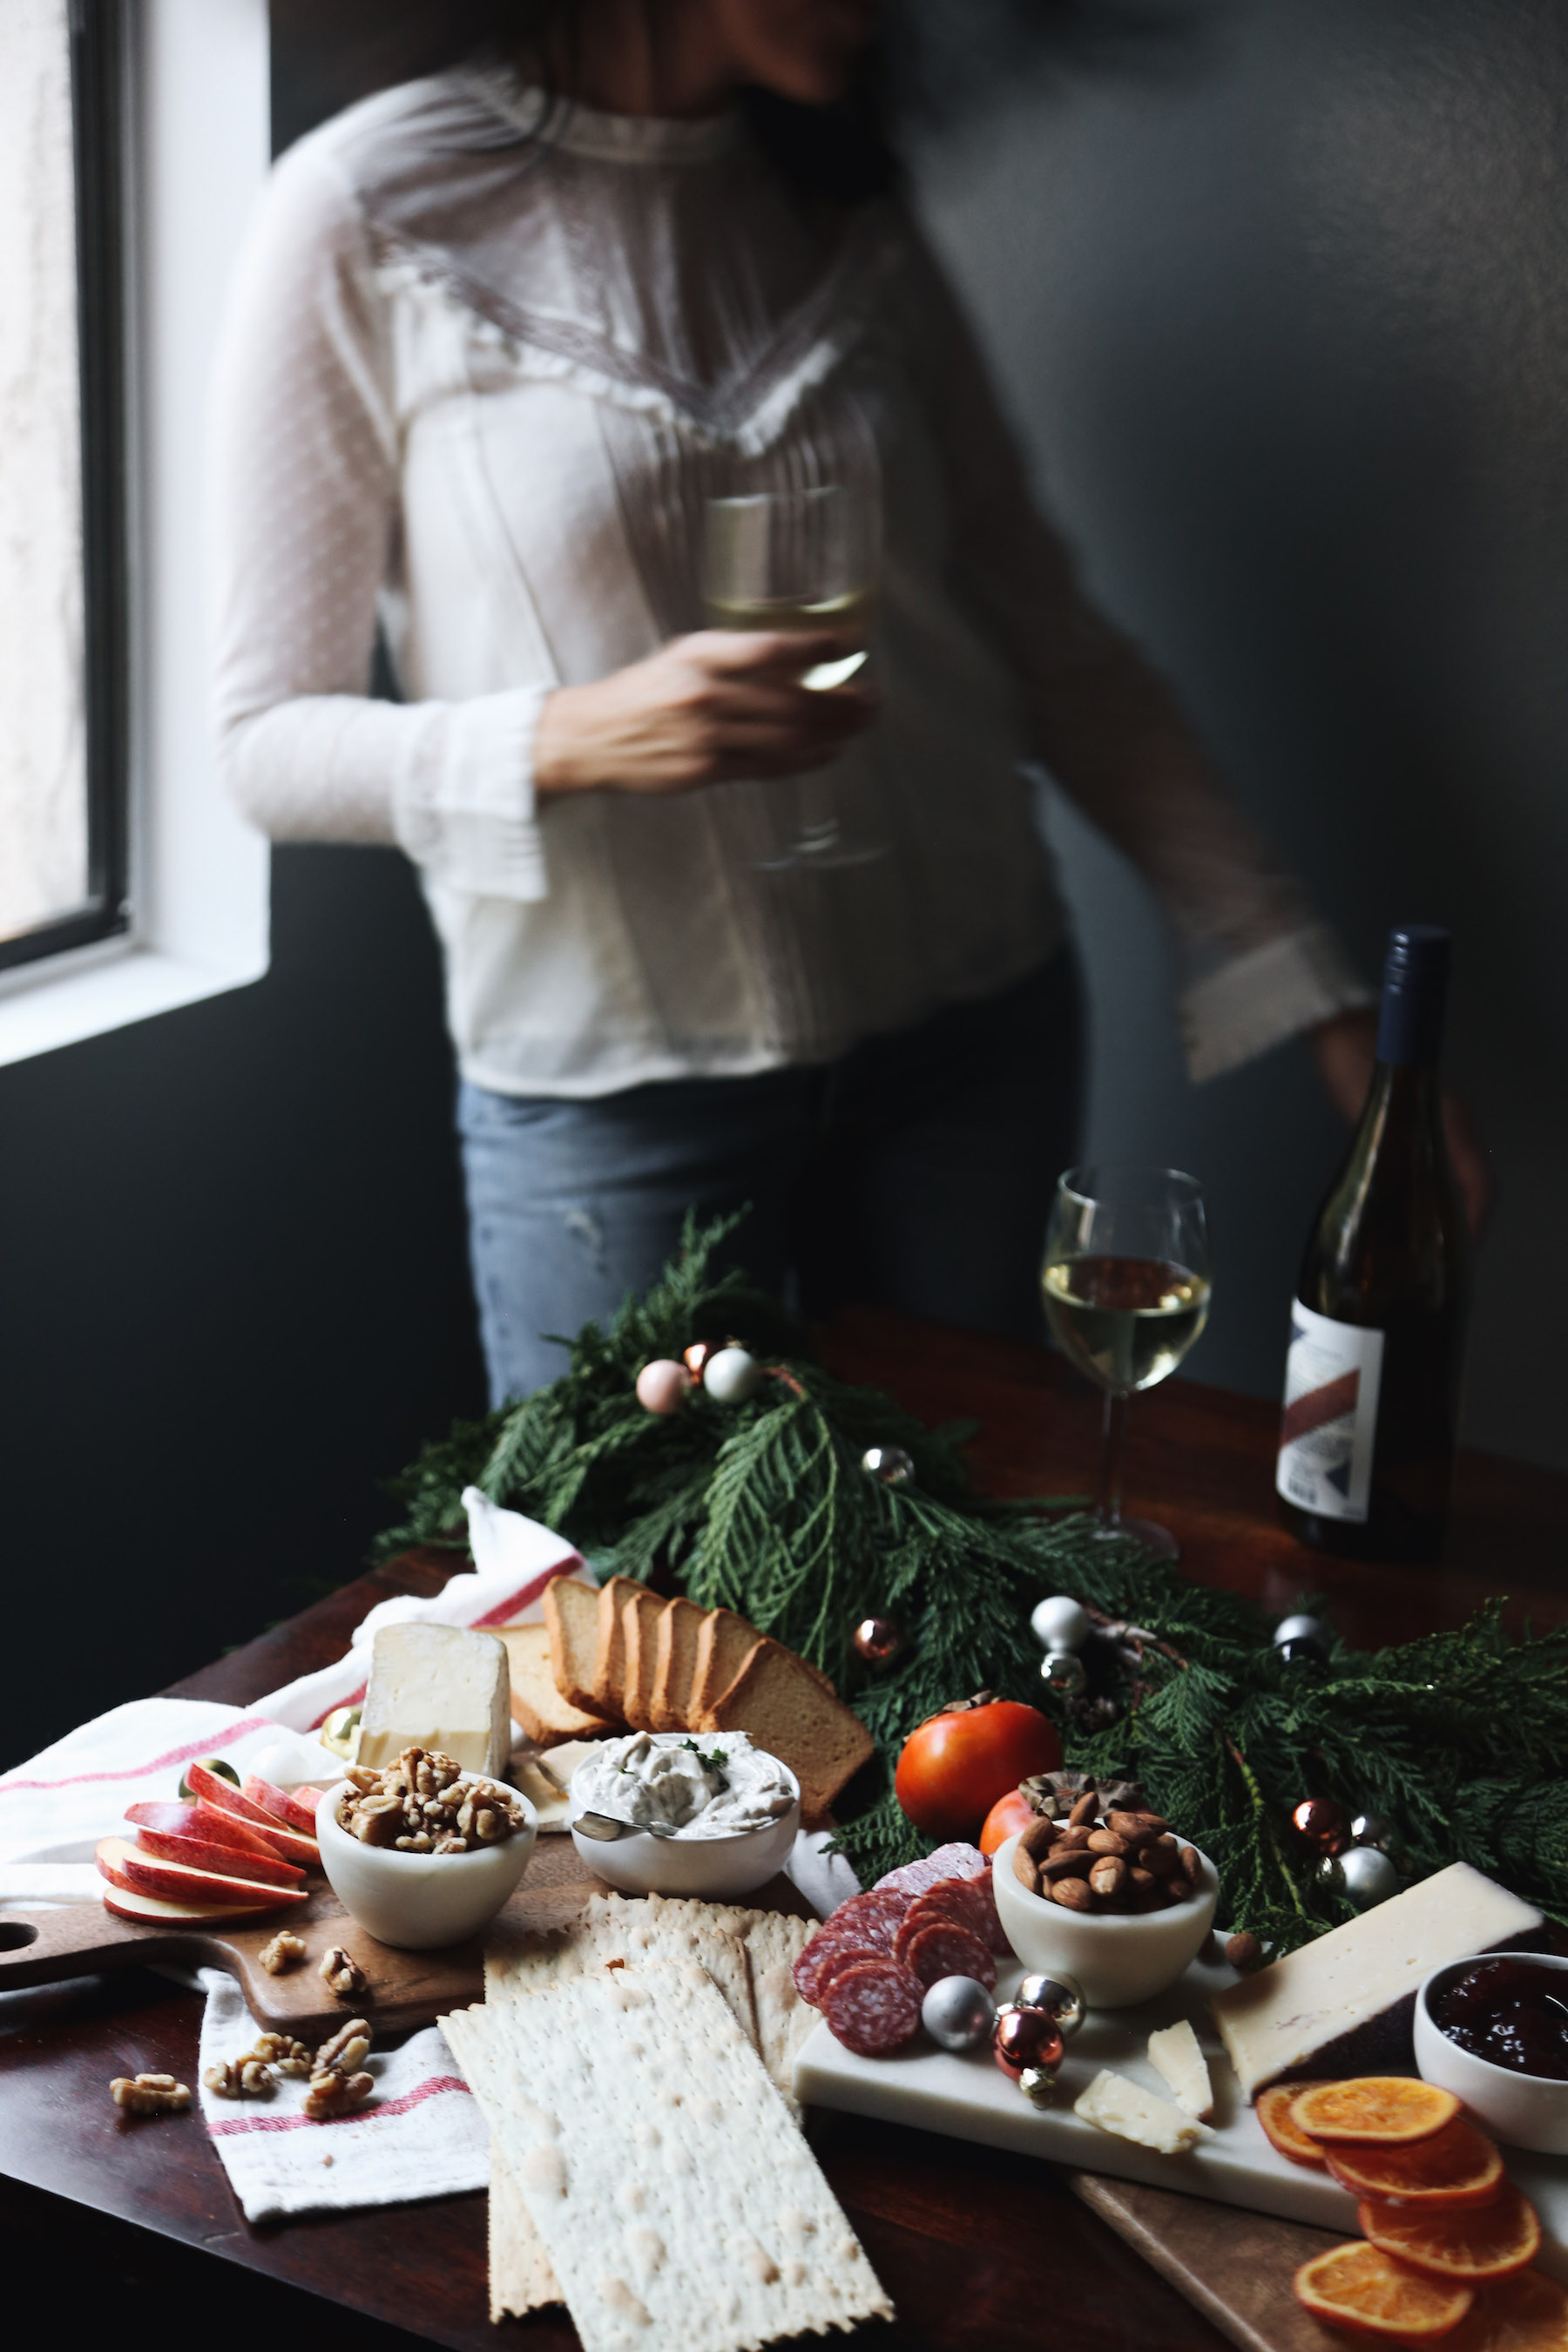 how to create a holiday cheeseboard for under 35 dollars16.jpg